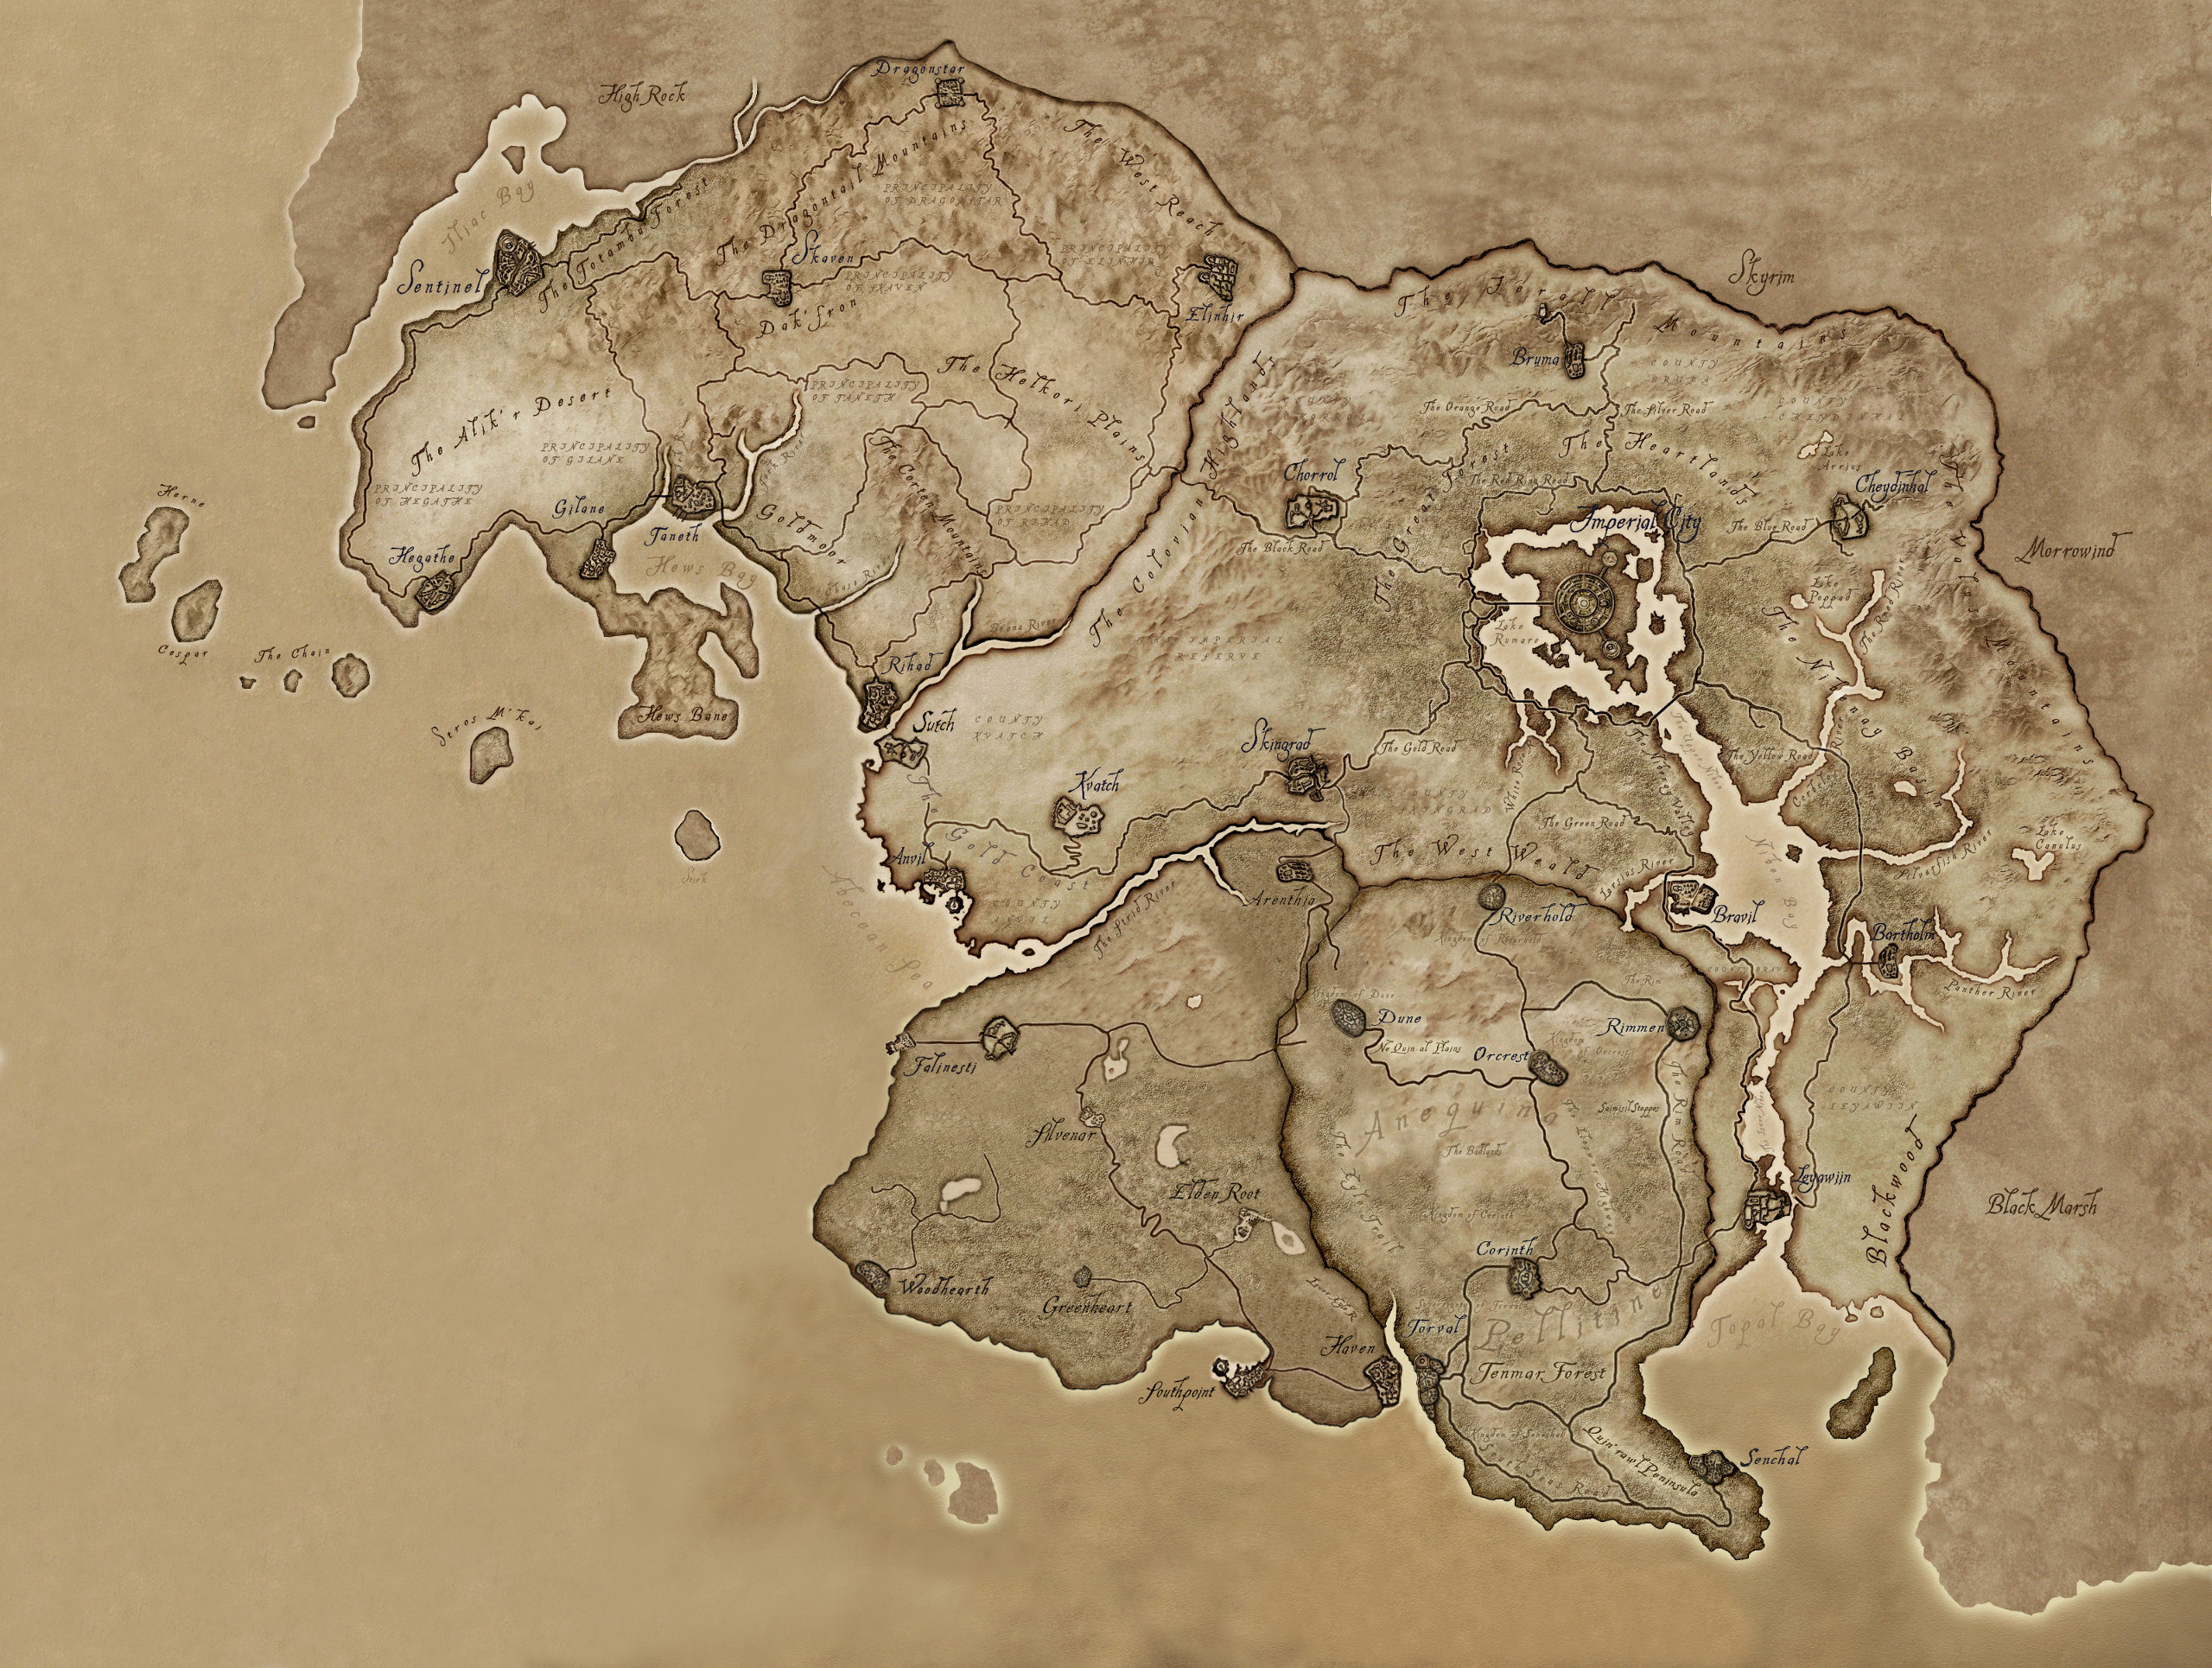 45230-1-1403210004 Detailed Map Of Oblivion on detailed map of martha's vineyard, detailed map of west ireland, detailed map of san bernardino, detailed map of grenada beaches, detailed map of divergent, detailed map of uk, detailed map of new england, detailed map of tamriel, detailed map of northern europe, detailed map of ohio state, detailed map of the us, detailed map of cyrodiil, detailed map of the world, detailed map of indiana pa, detailed map of modern israel, detailed map of pinellas trail, detailed map of skyrim, detailed map of the philippines, detailed map of fallujah, detailed map of east africa,